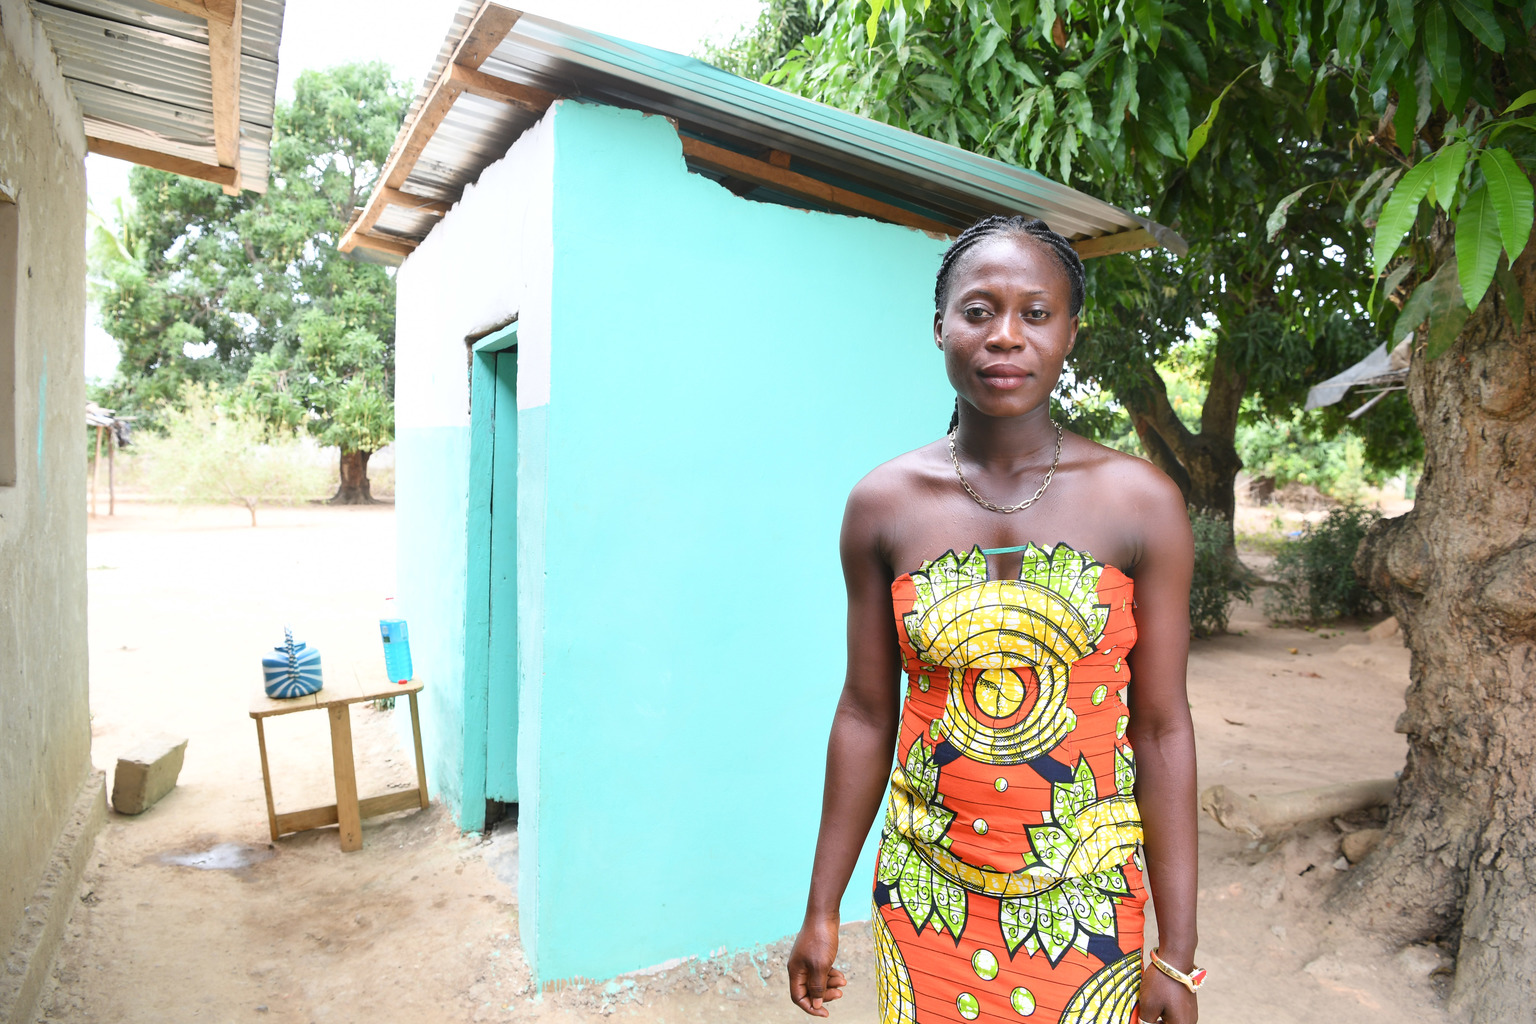 Emmanuelle Zroh of Guehiebly, Côte d'Ivoire is happy to let her neighbors use her new toilet.